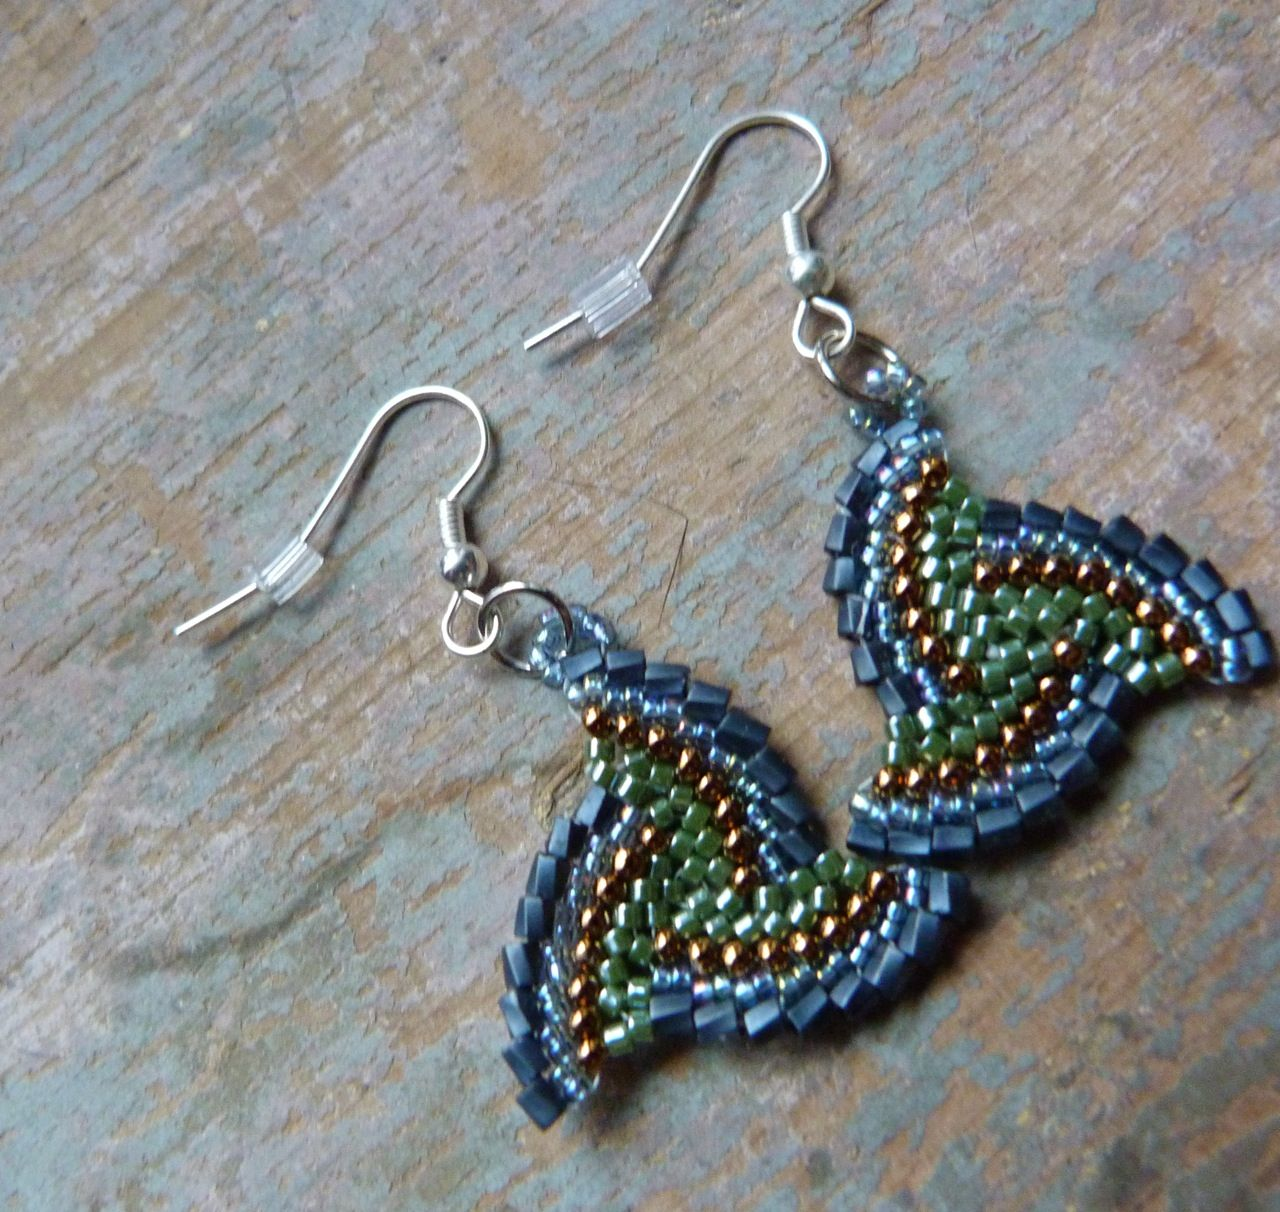 Free Seed Bead Earring Patterns Just About Be An Everyday For Me Love Them Thanks Katie